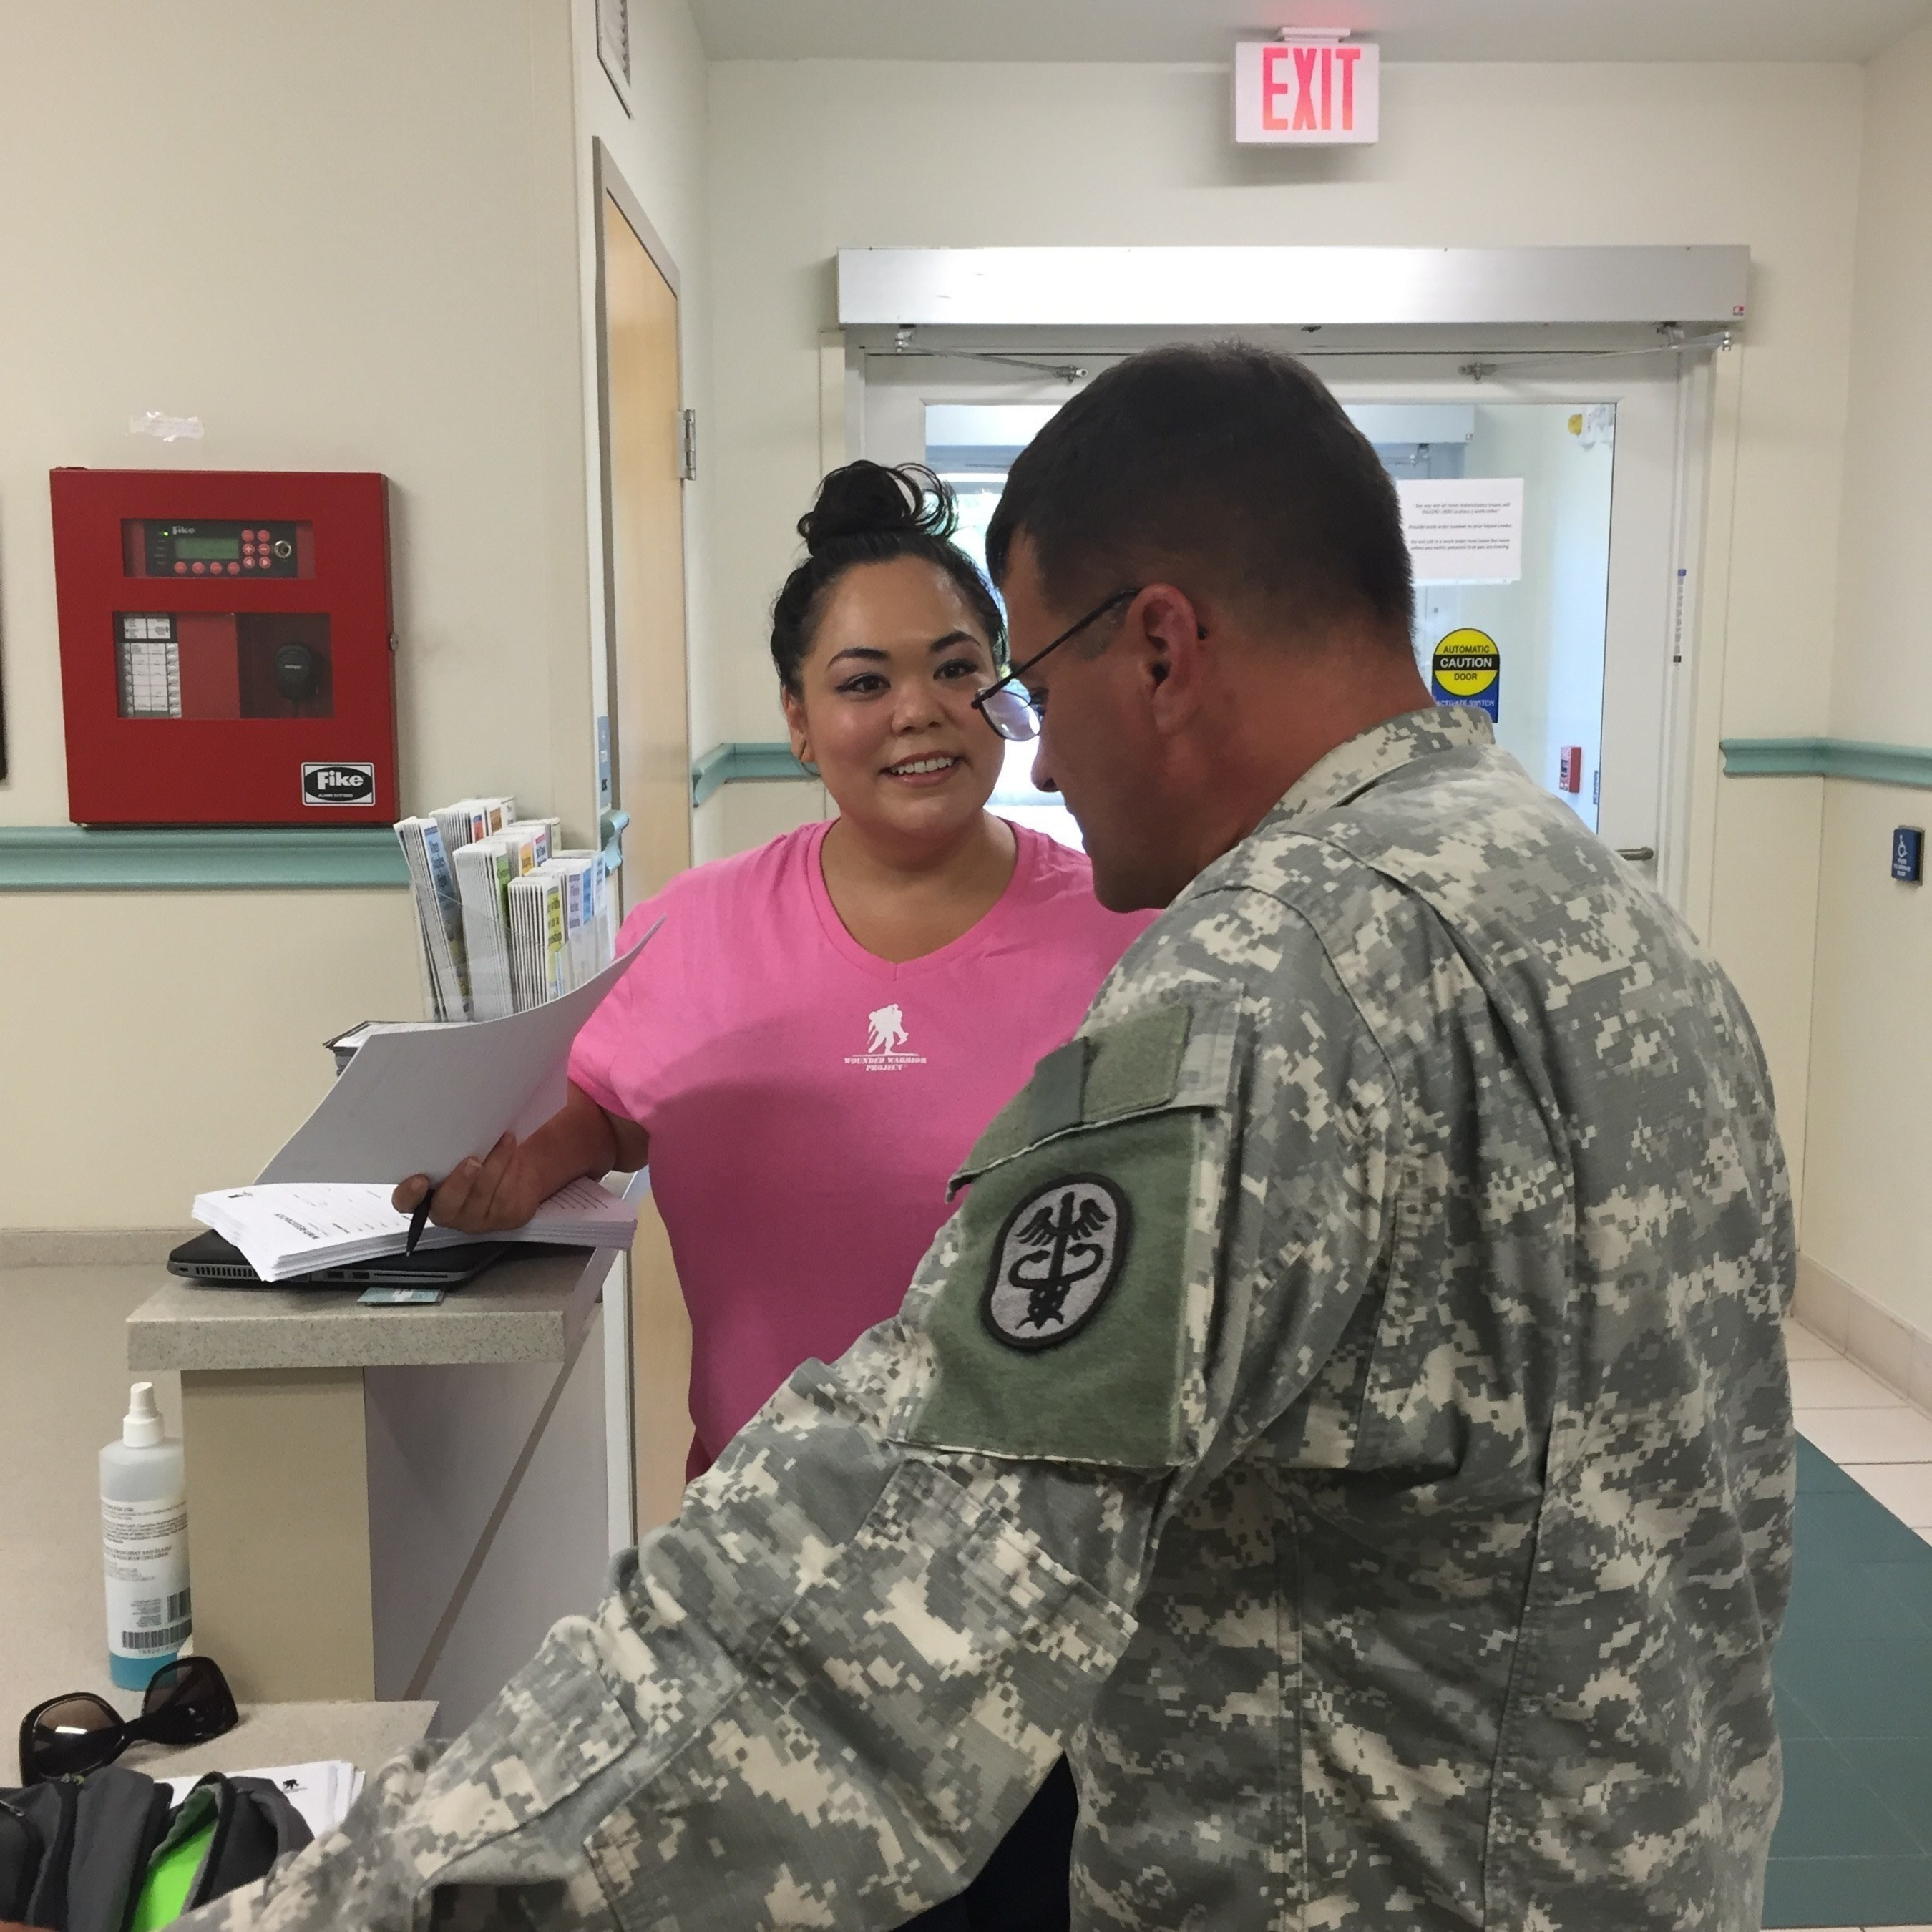 Benefits Claim Day is one of the events gaining traction across the nation as an innovative collaboration between WWP and VA.